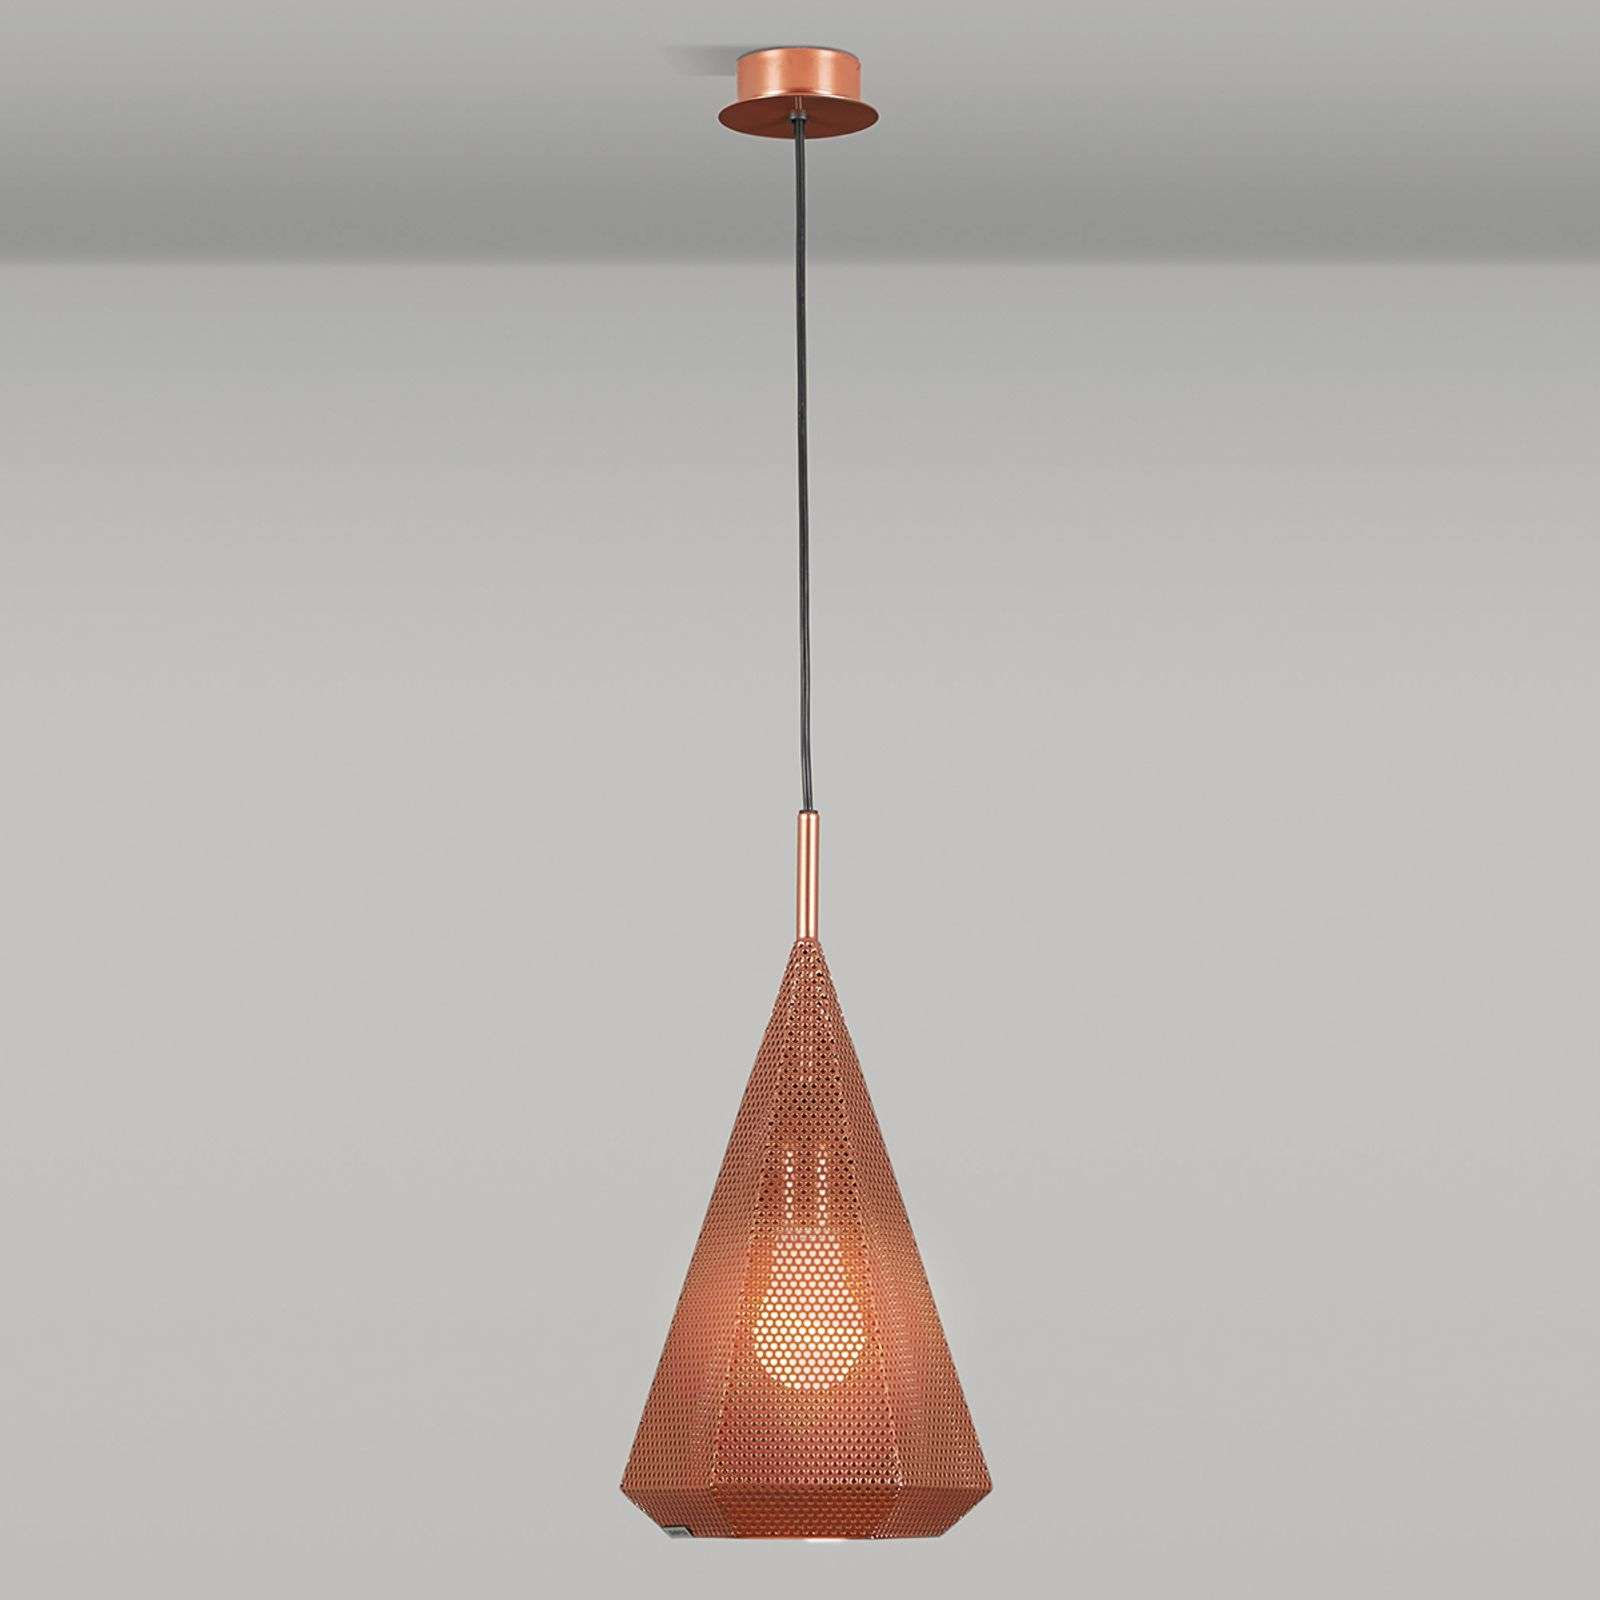 copper pendant lighting. Copper Pendant Light Priamo, Sheet Steel Lampshade-4011737-01 Lighting